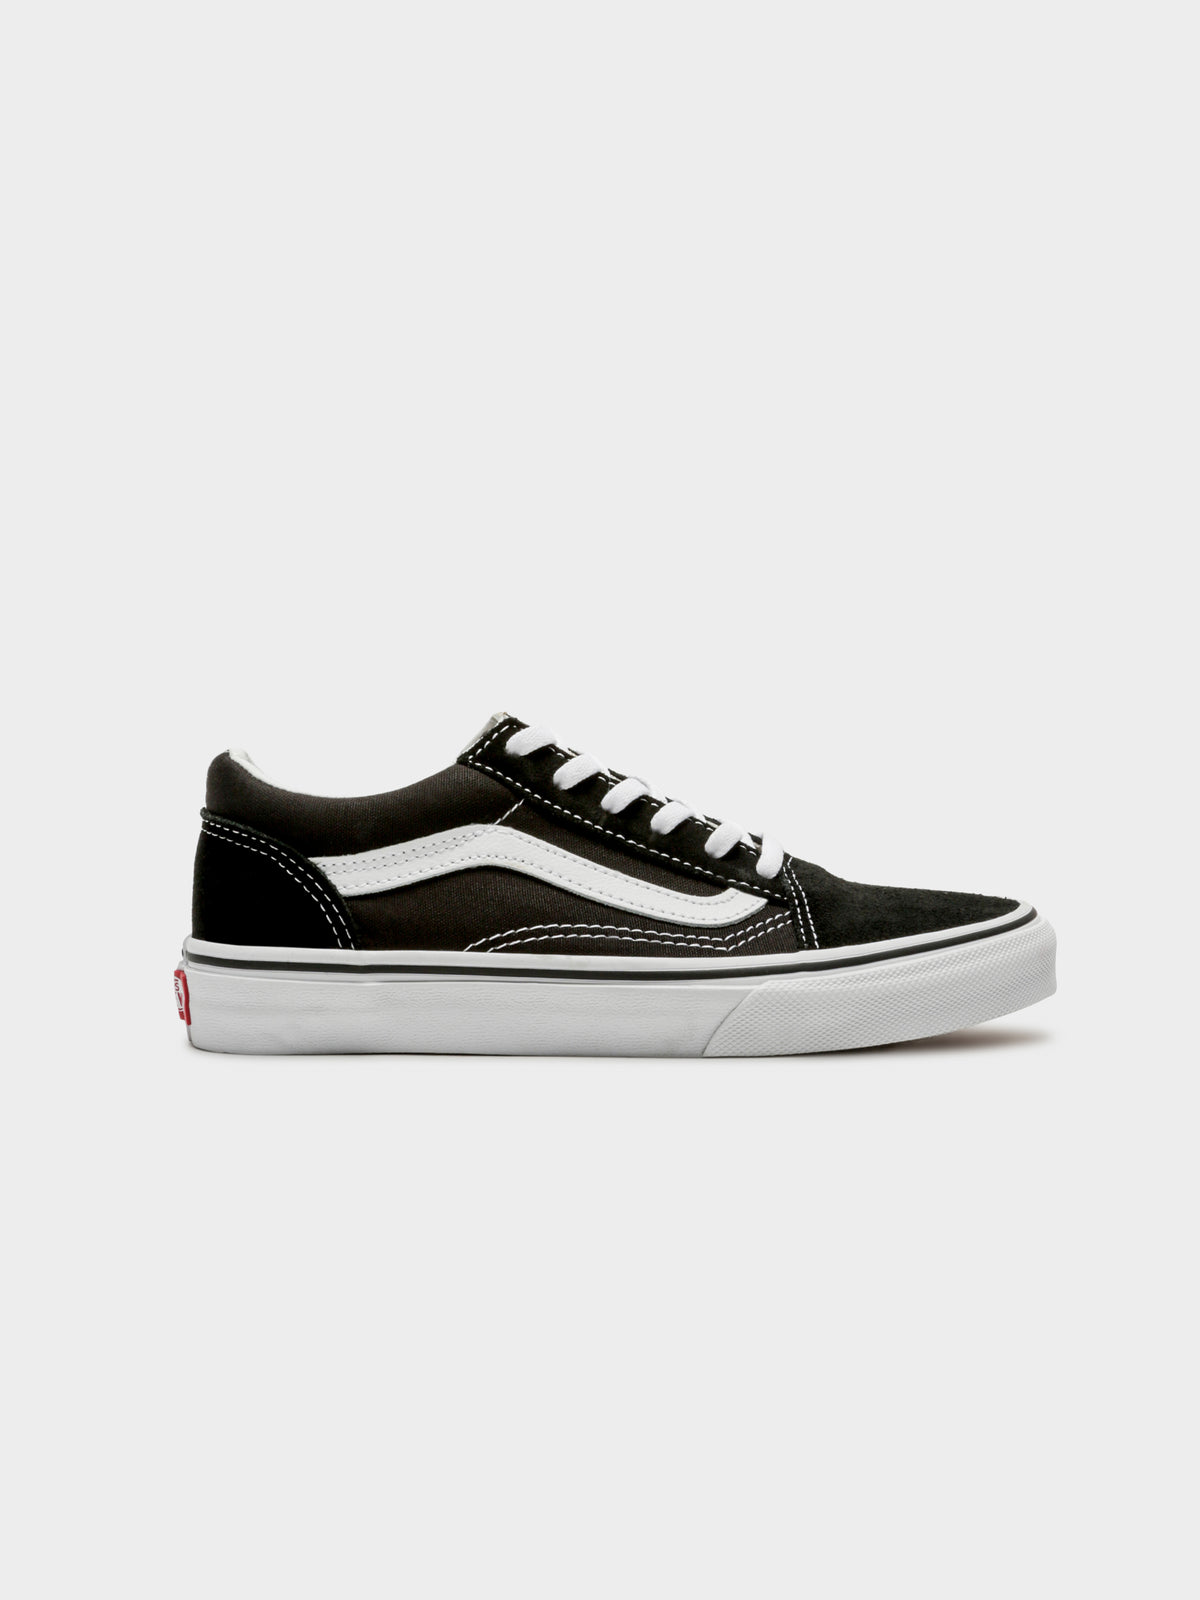 Womens Old Skool Sneakers in Black & White